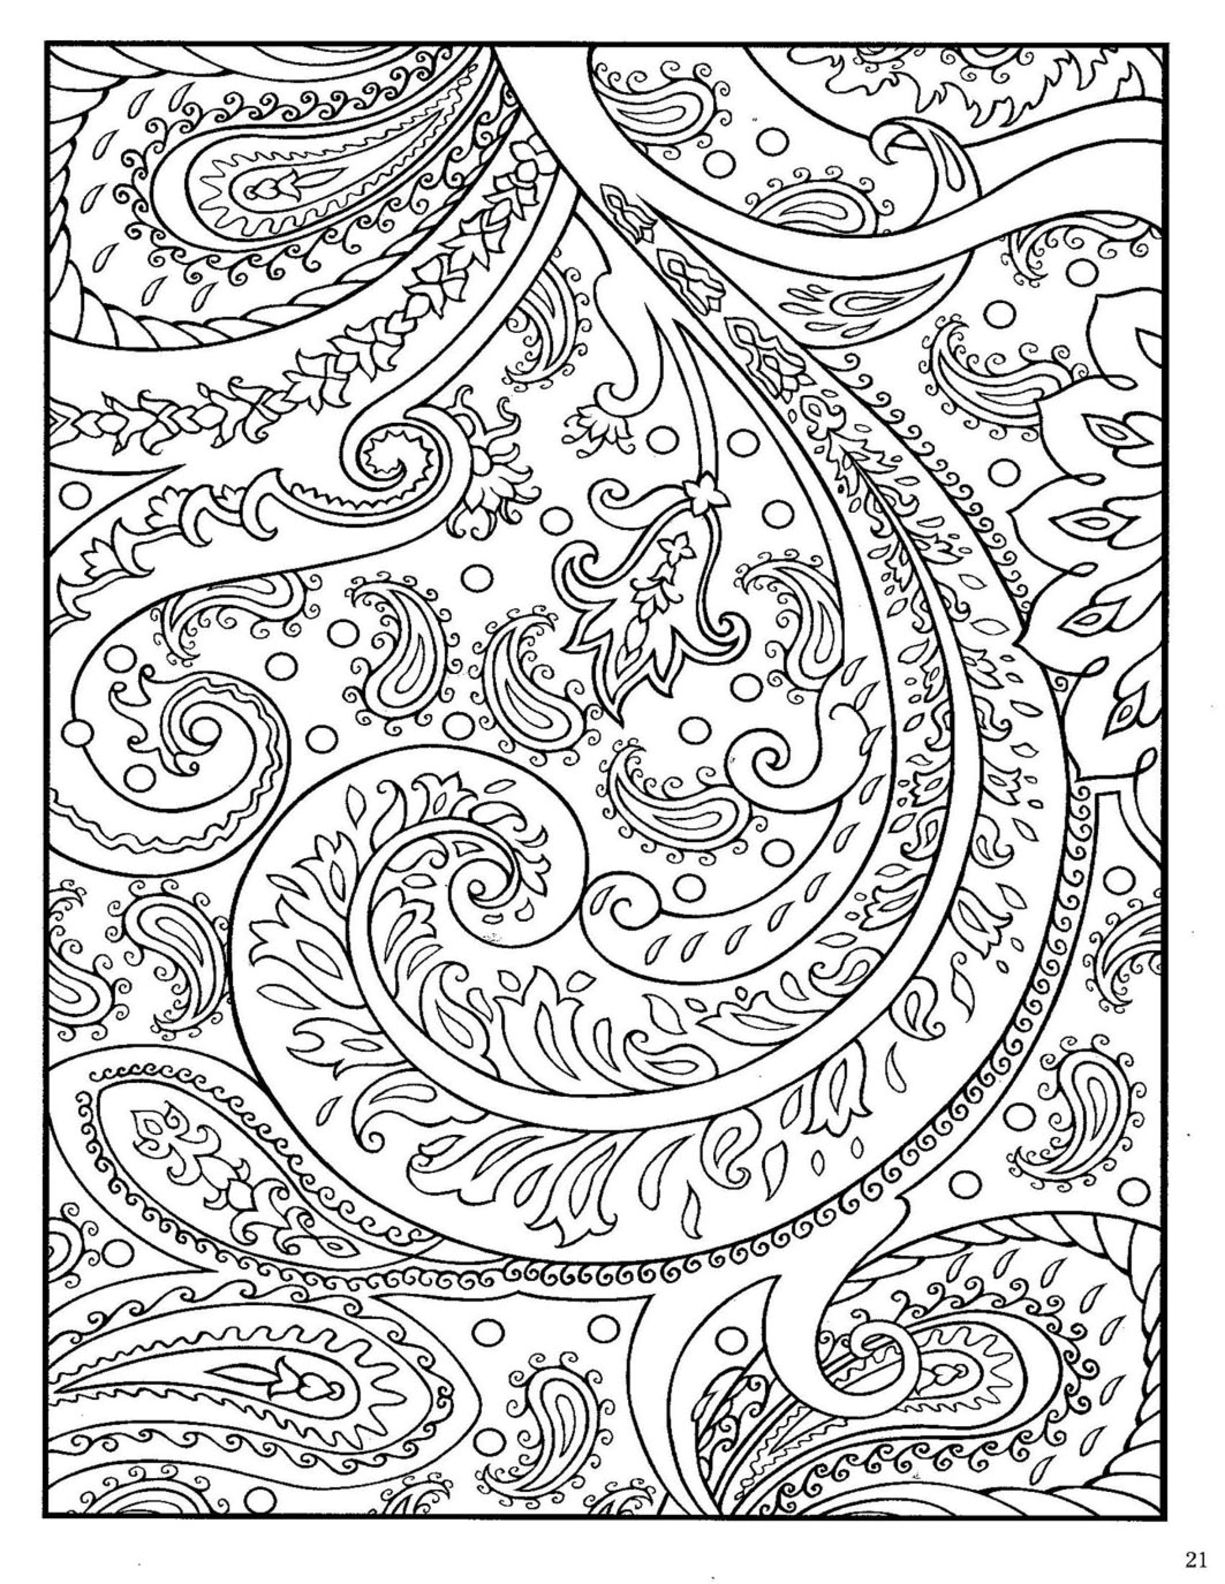 free printable paisley coloring pages easy paisley coloring pages at getdrawings free download free coloring printable paisley pages